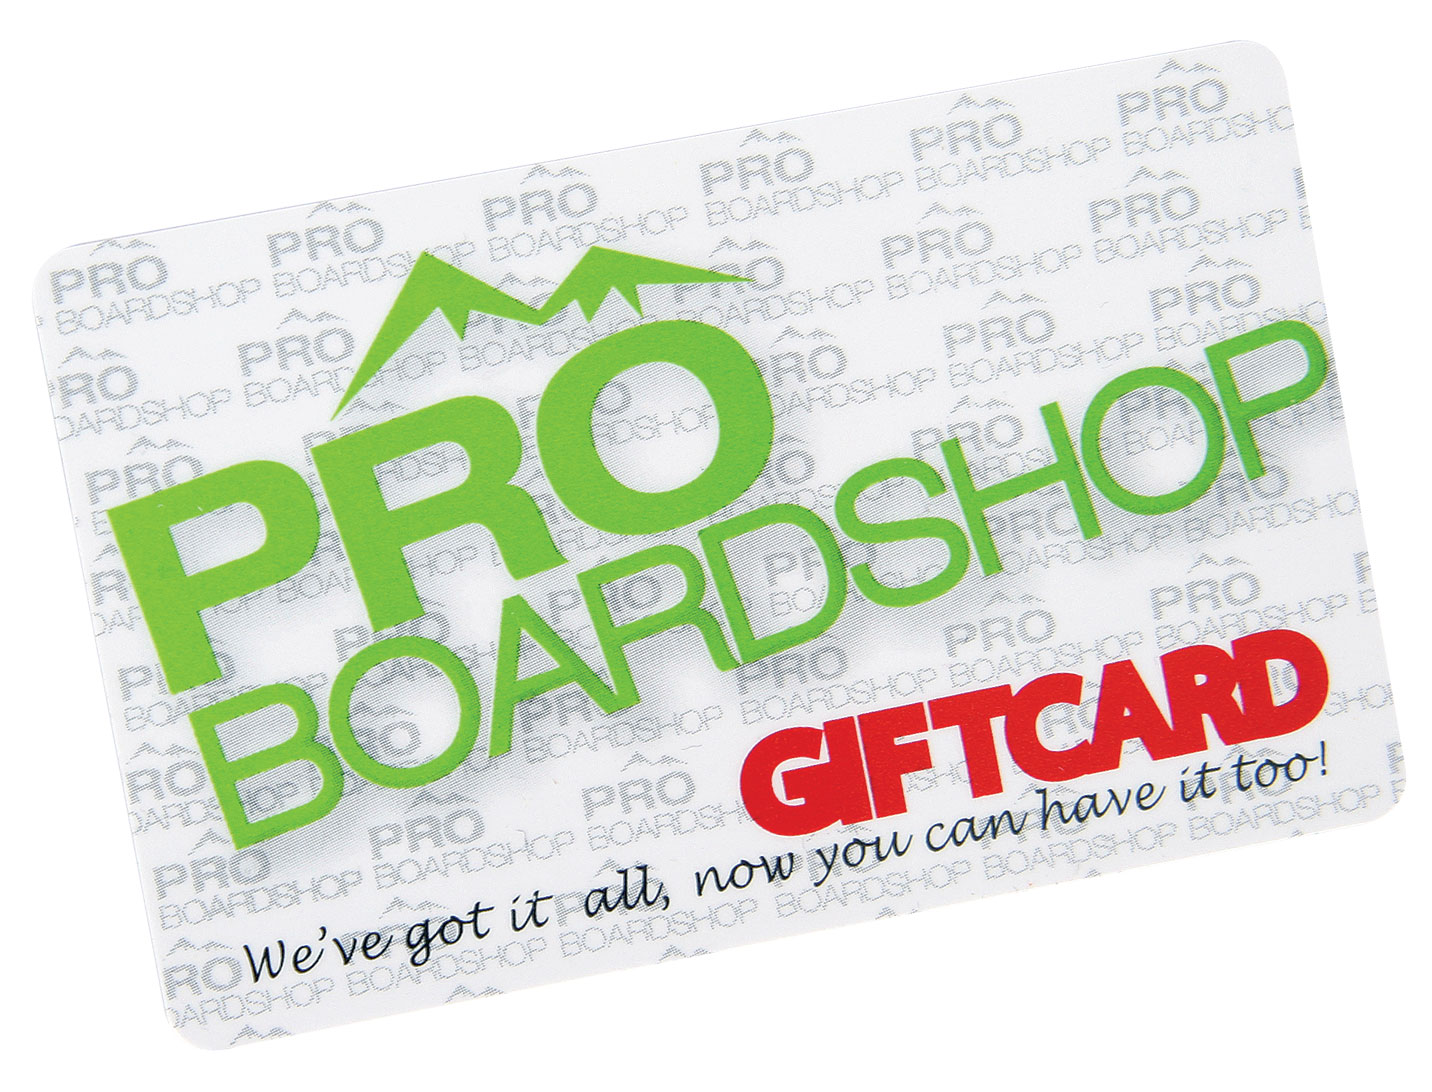 Let them choose! Whether you're having trouble picking the right gift, or you just want to make sure they get the perfect gear, a Proboardshop gift card is sure to please. No more worries about the right color, size, or current style. You'll get 5 stars for gift giving, and they'll get exactly what they want. Note:Currently, Proboardshop gift cards are only redeemable through phone sale. The lucky receiver should call 1-888-557-0551 to place their order and redeem their gift card. - $75.00